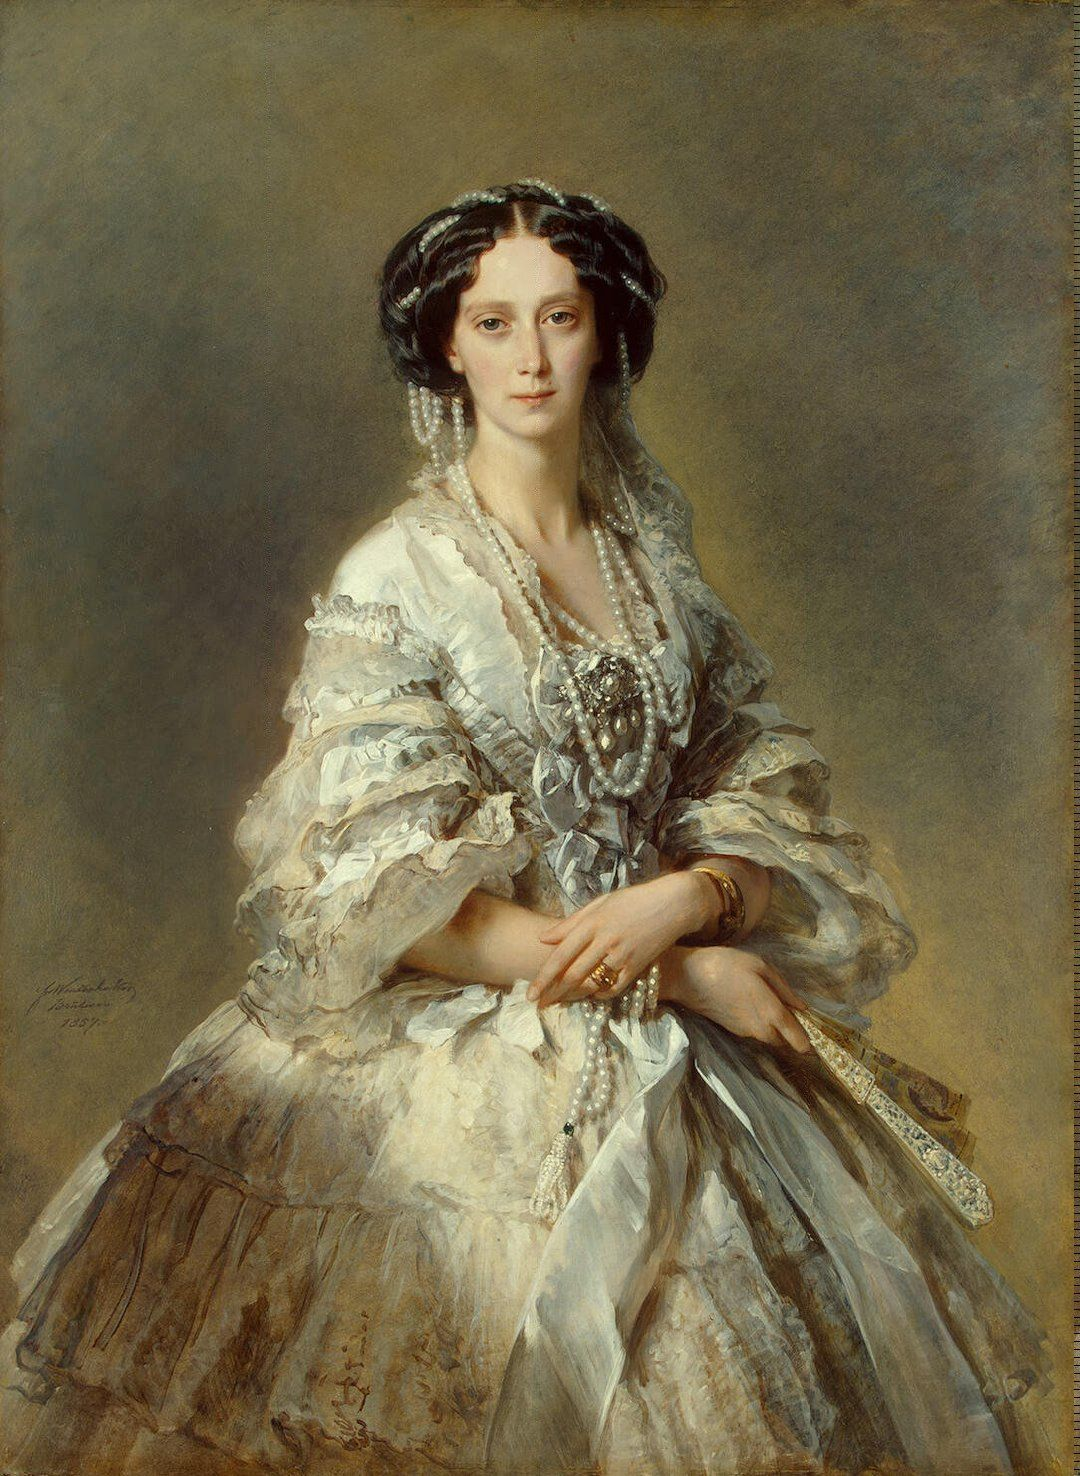 Winterhalter Francois Xavier Portrait of Empress Maria Alexandrovna Painting Reproduction On Artclon For Sale | Buy Art Reproductions Portrait of Empress Maria Alexandrovna